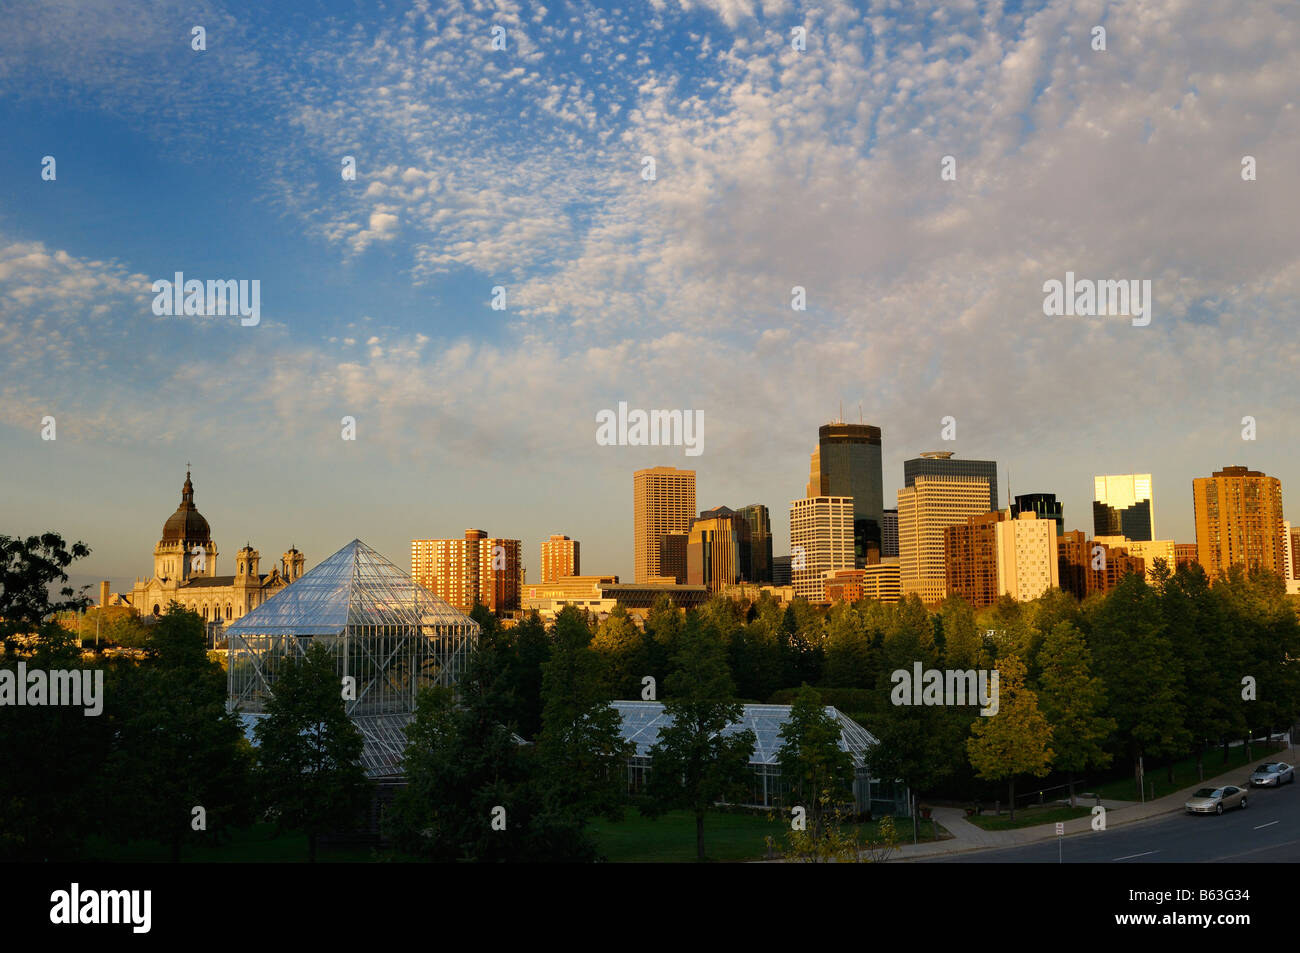 Sunset view of Minneapolis skyline from the Sculpture Garden Greenhouses - Stock Image